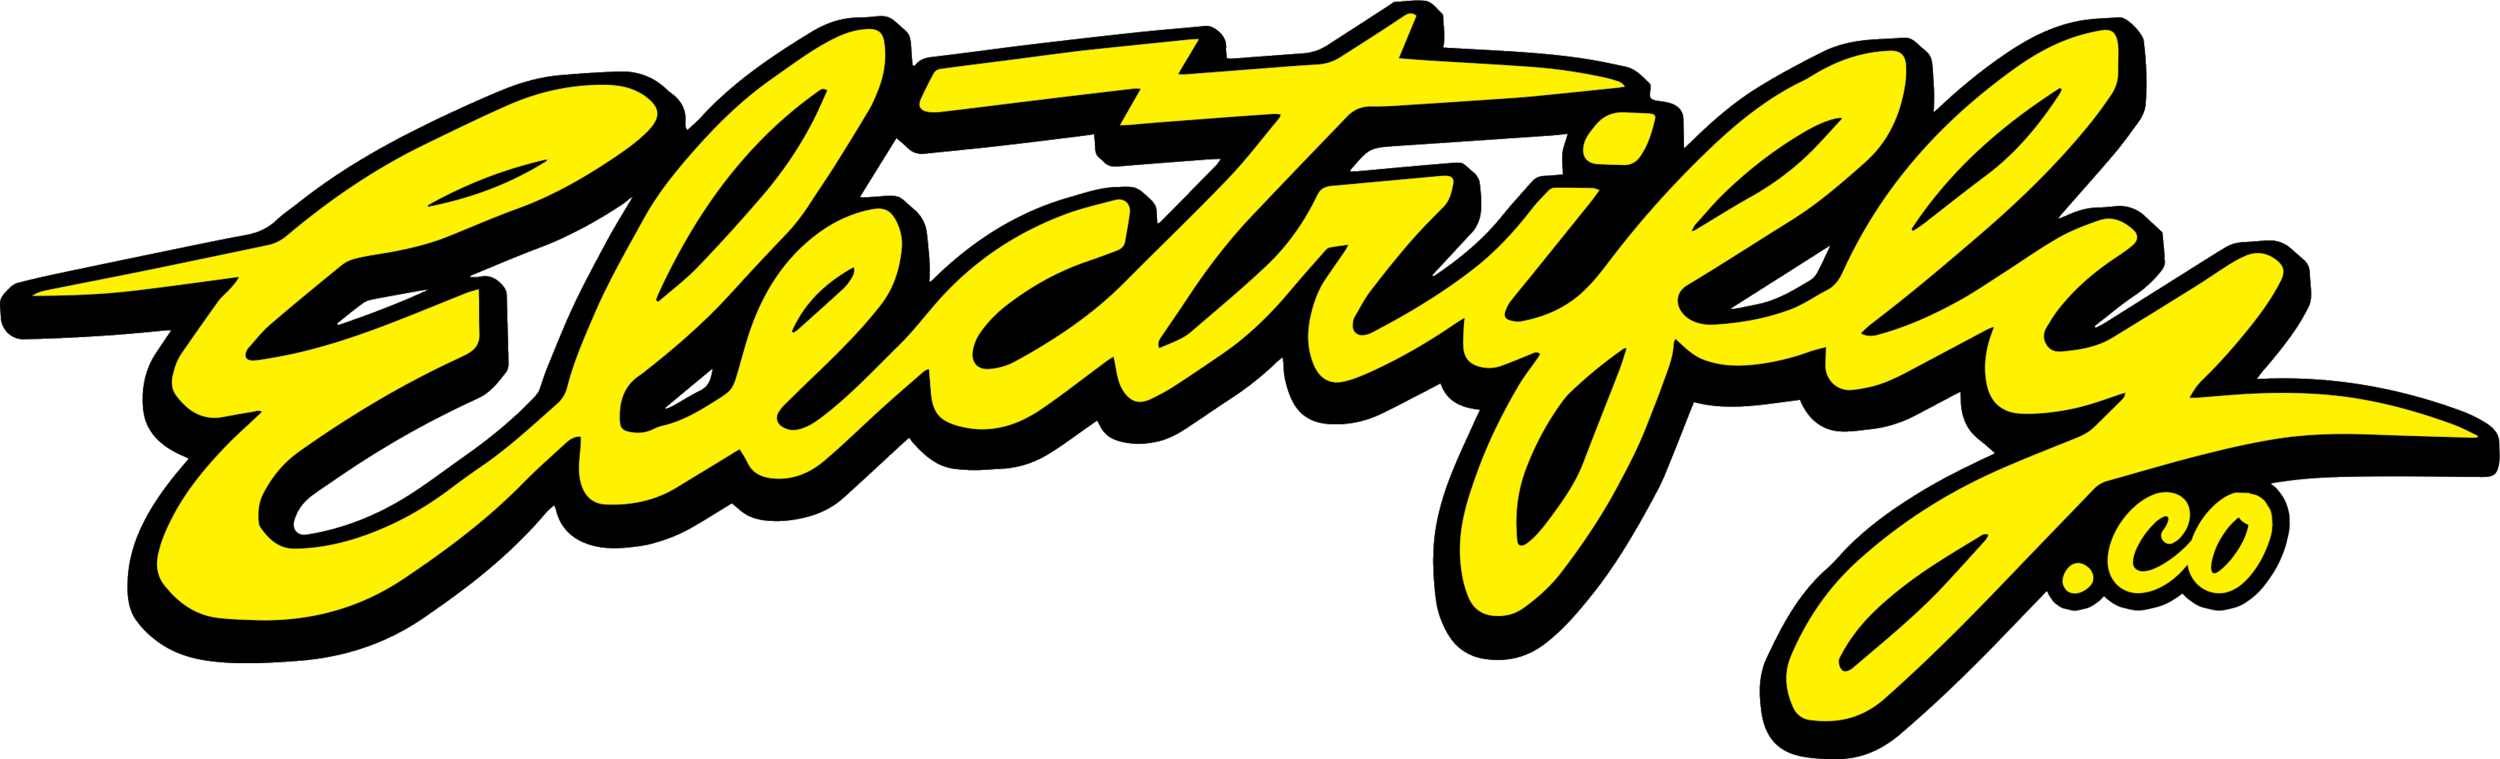 Electrifly Dot Co Curved Font 1.png